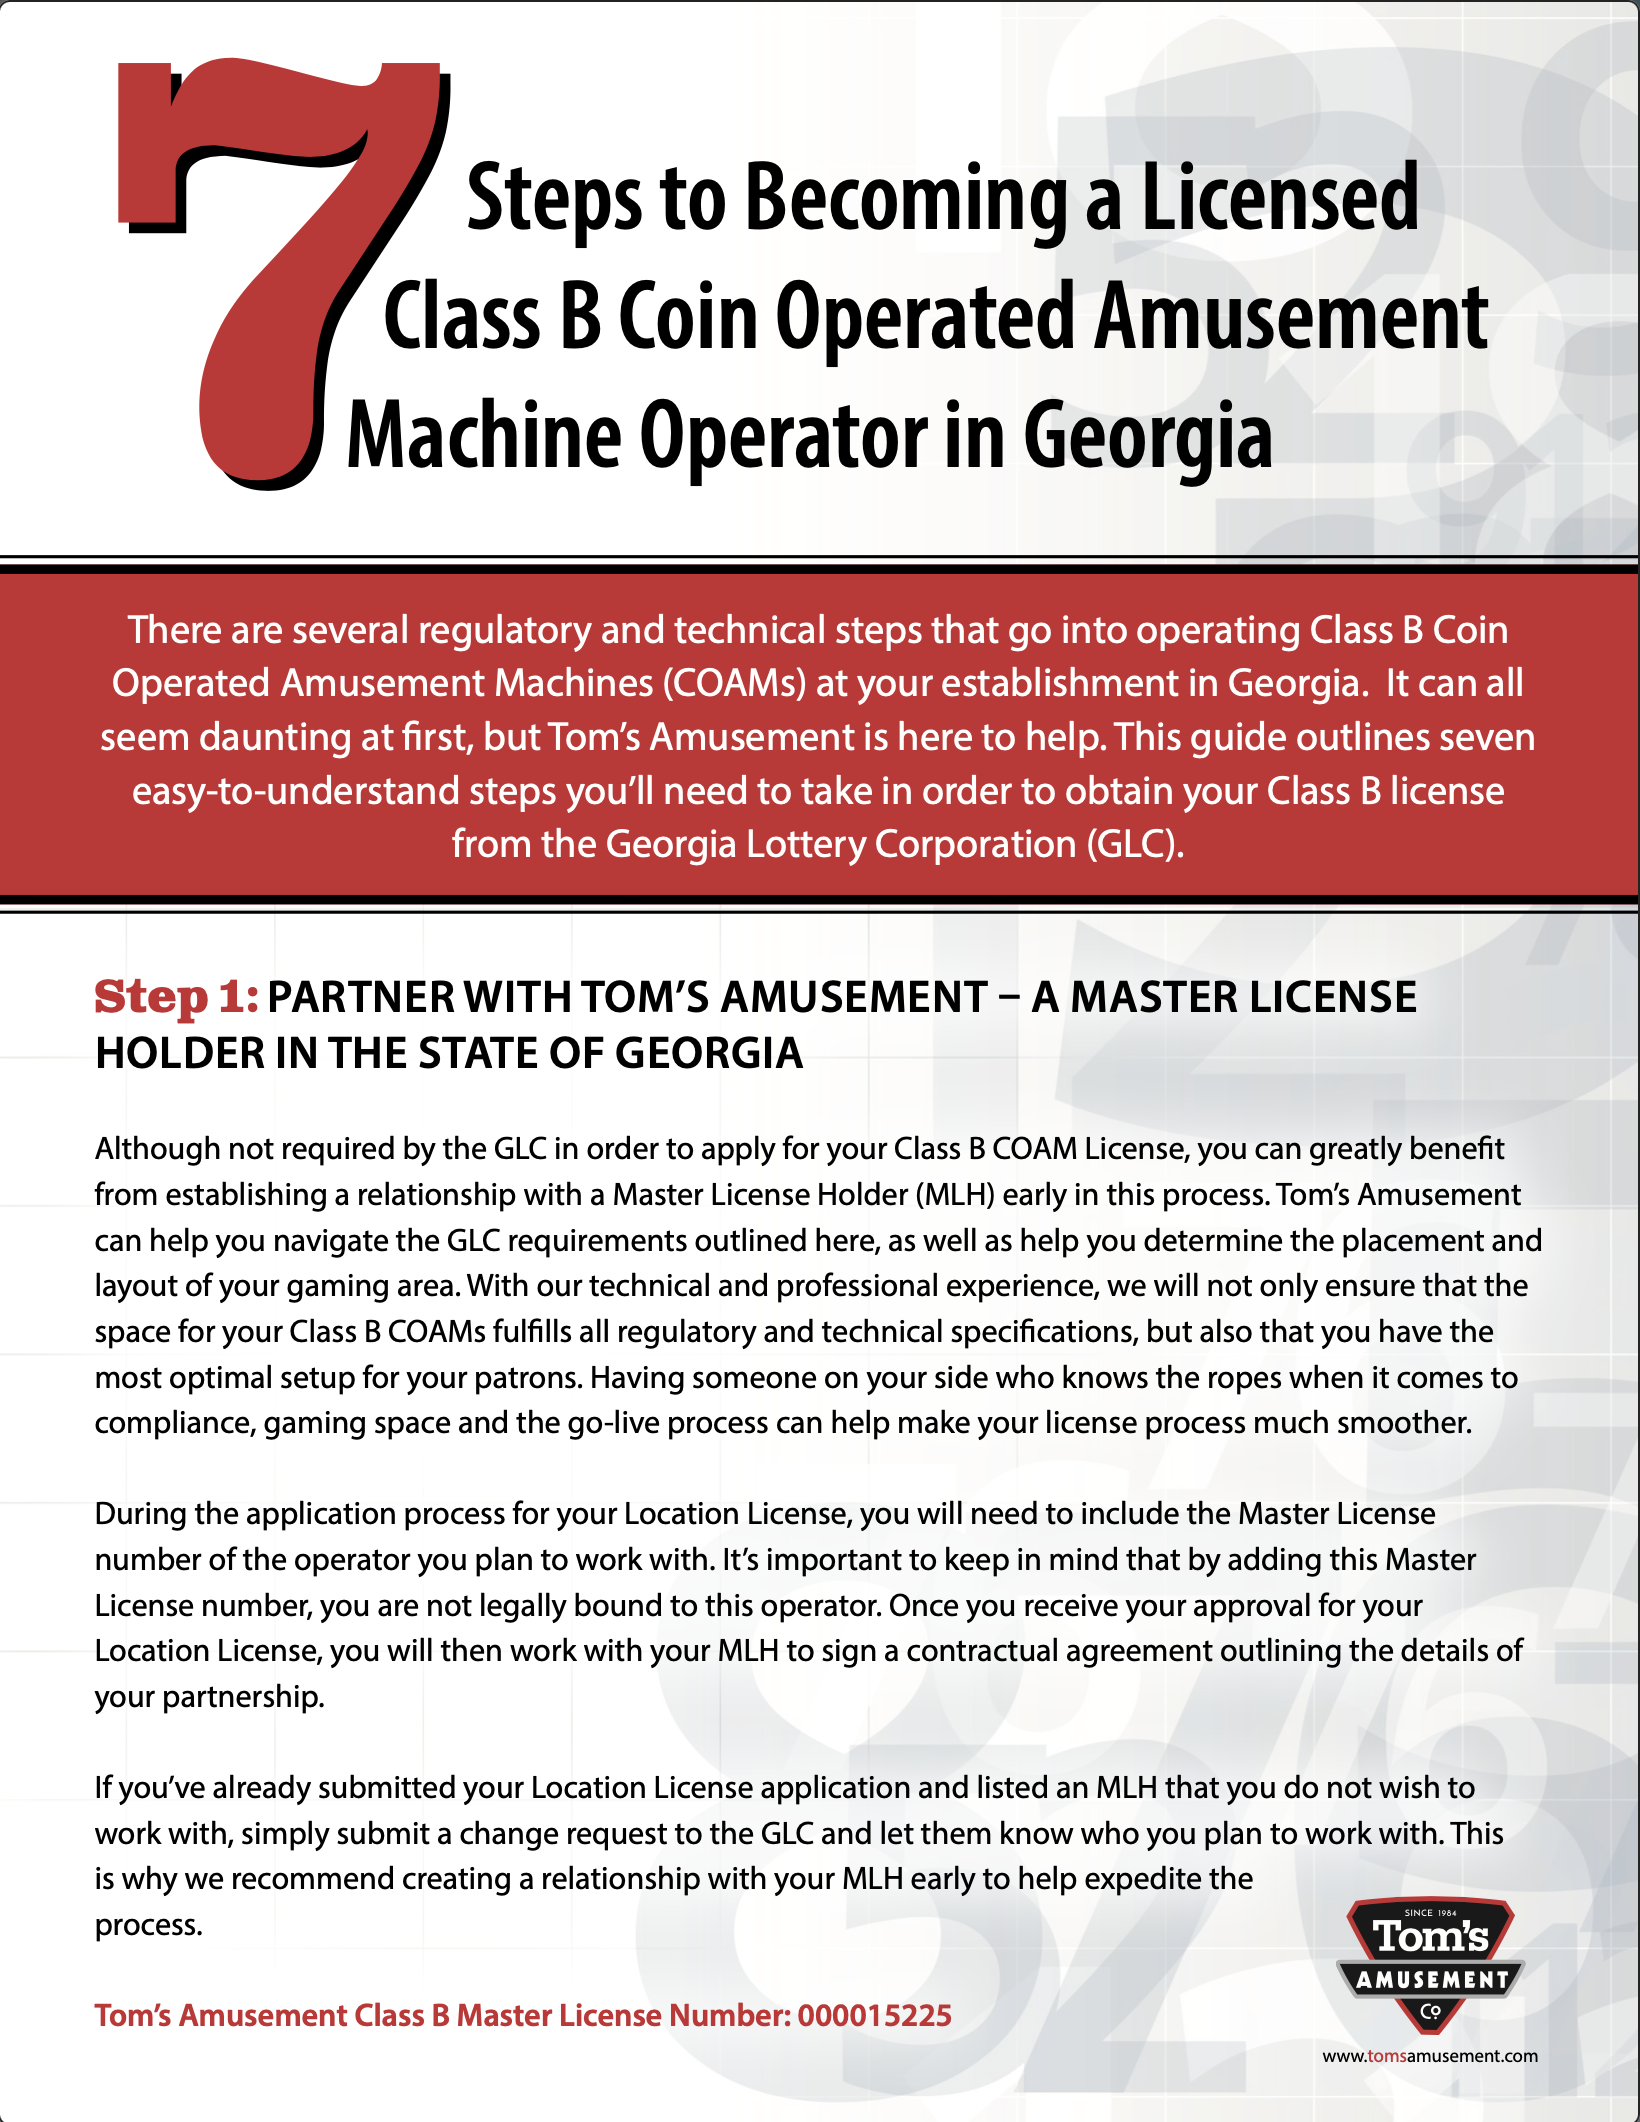 7 Steps to Becoming a Licensed Class B COAM Operator in GA_GA Content Offer_2021_HighRes